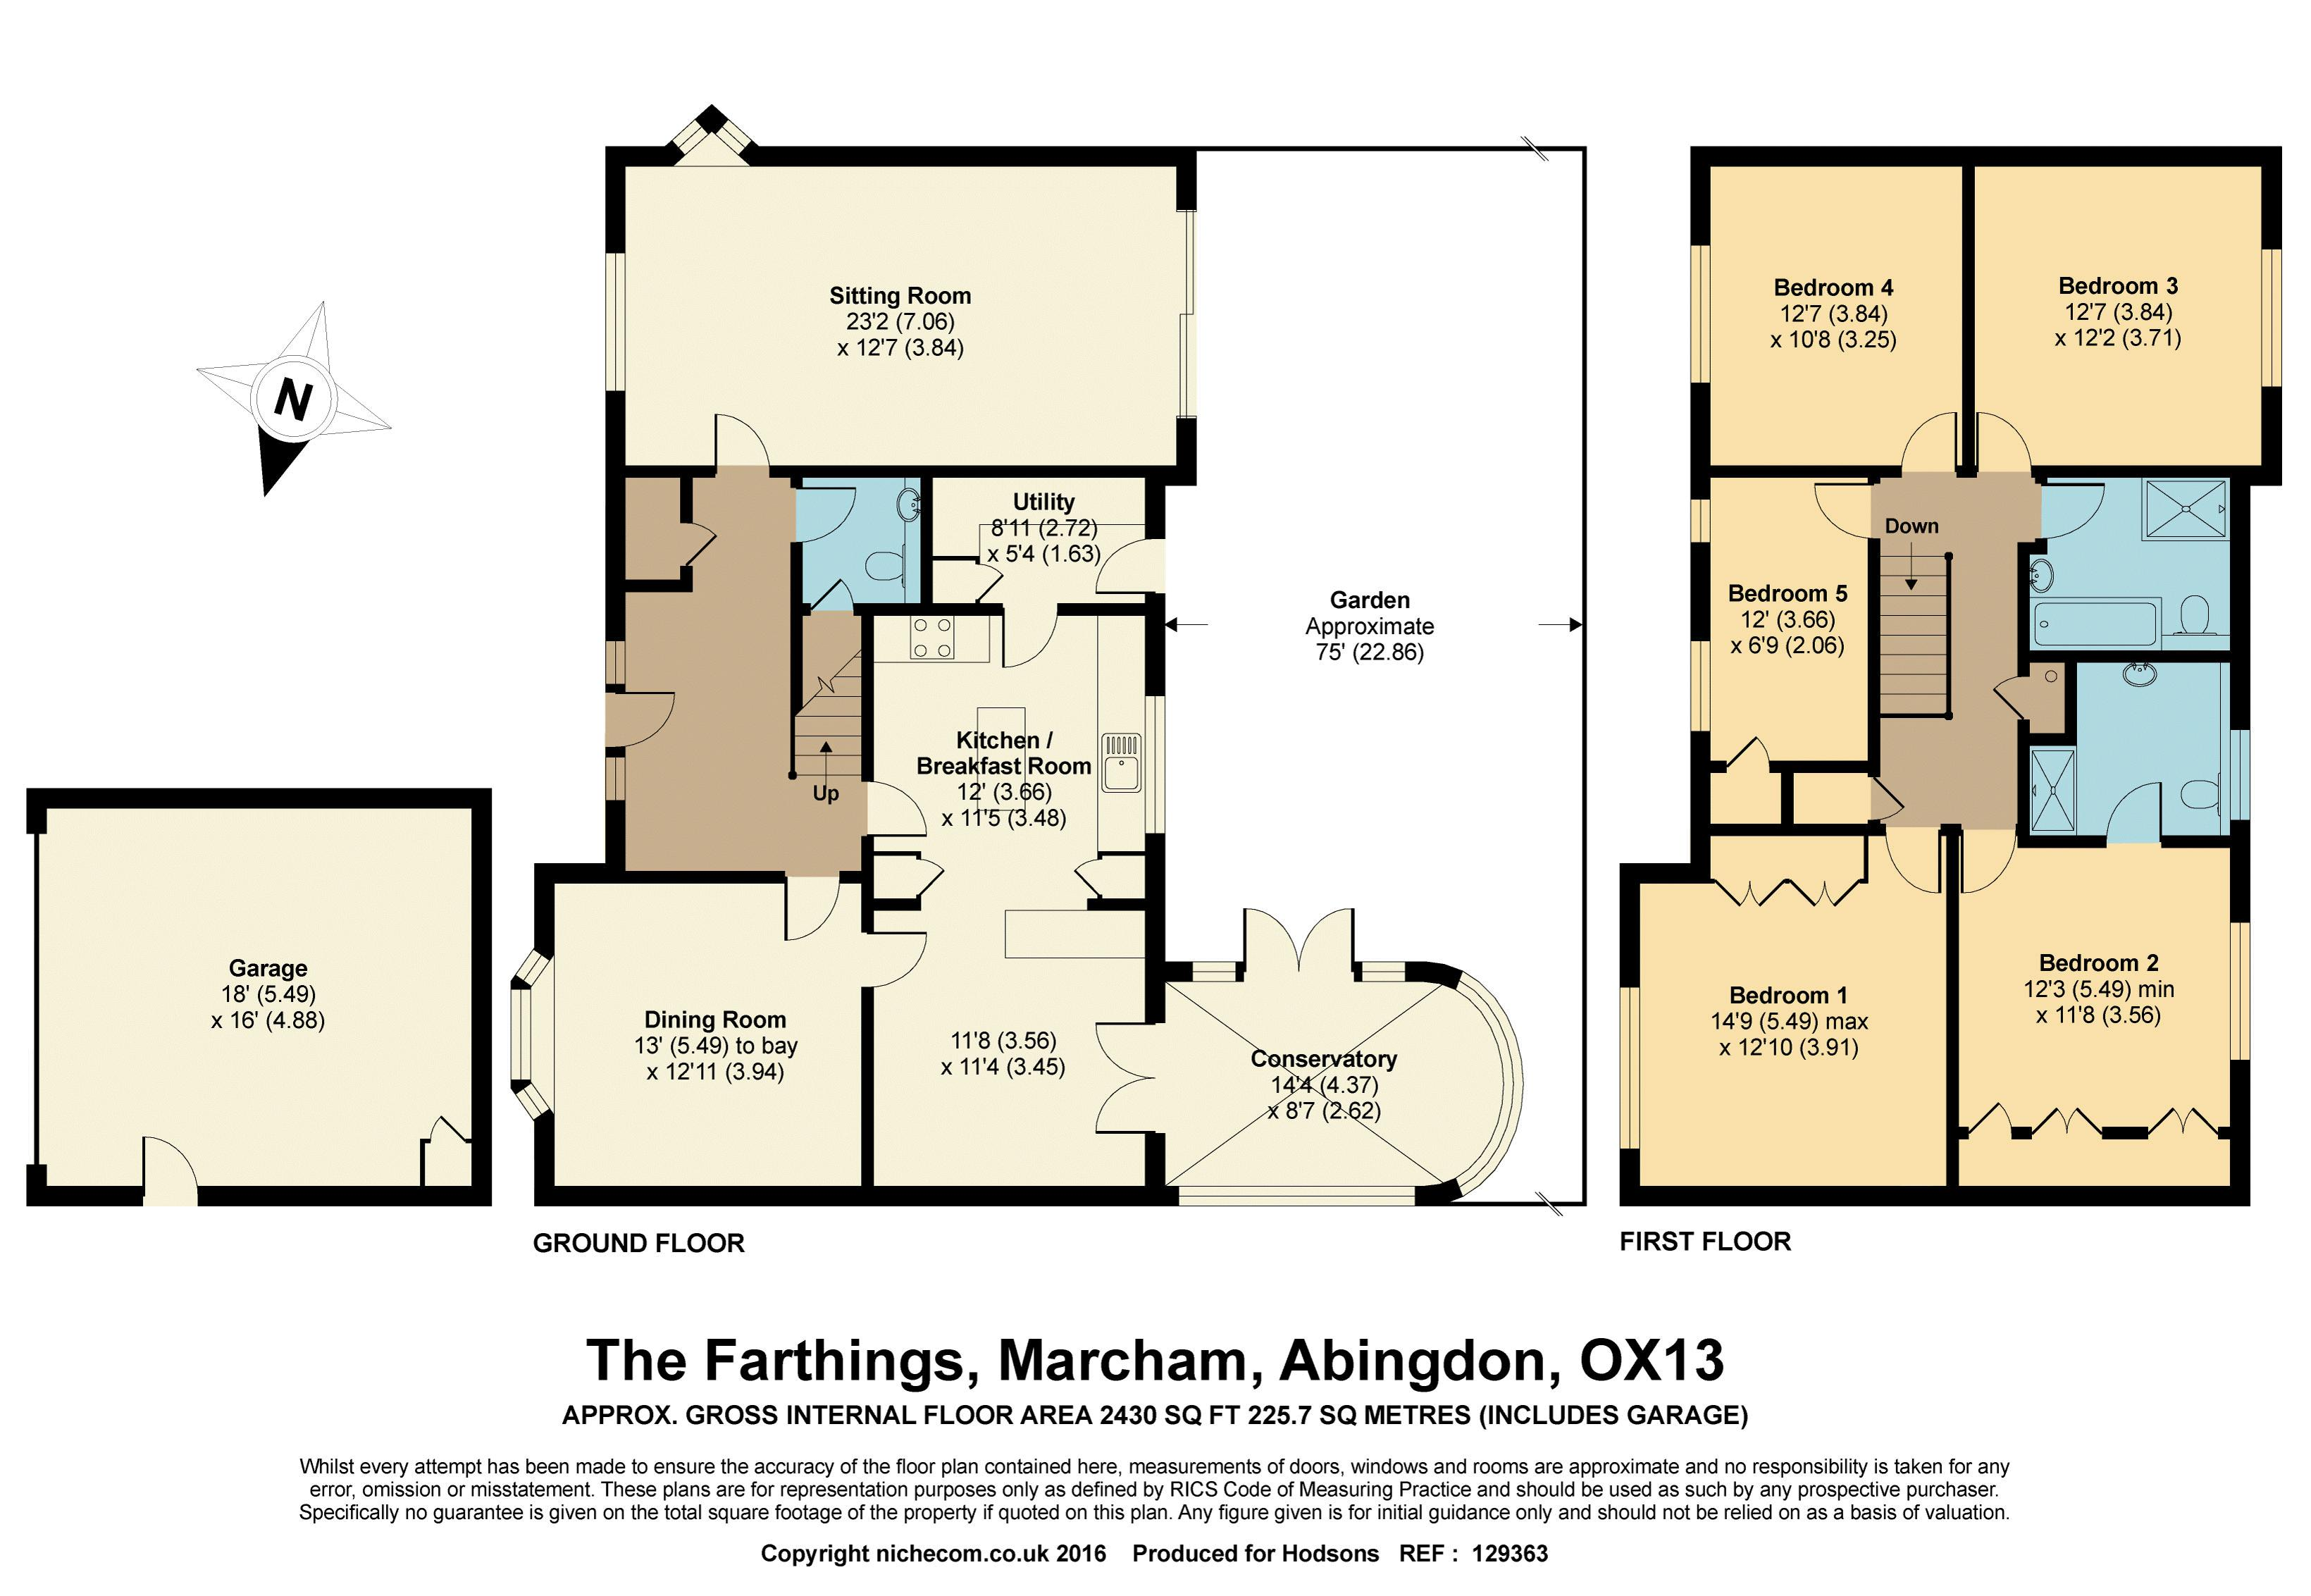 Average Electric Bill For 5 Bedroom House 28 Images